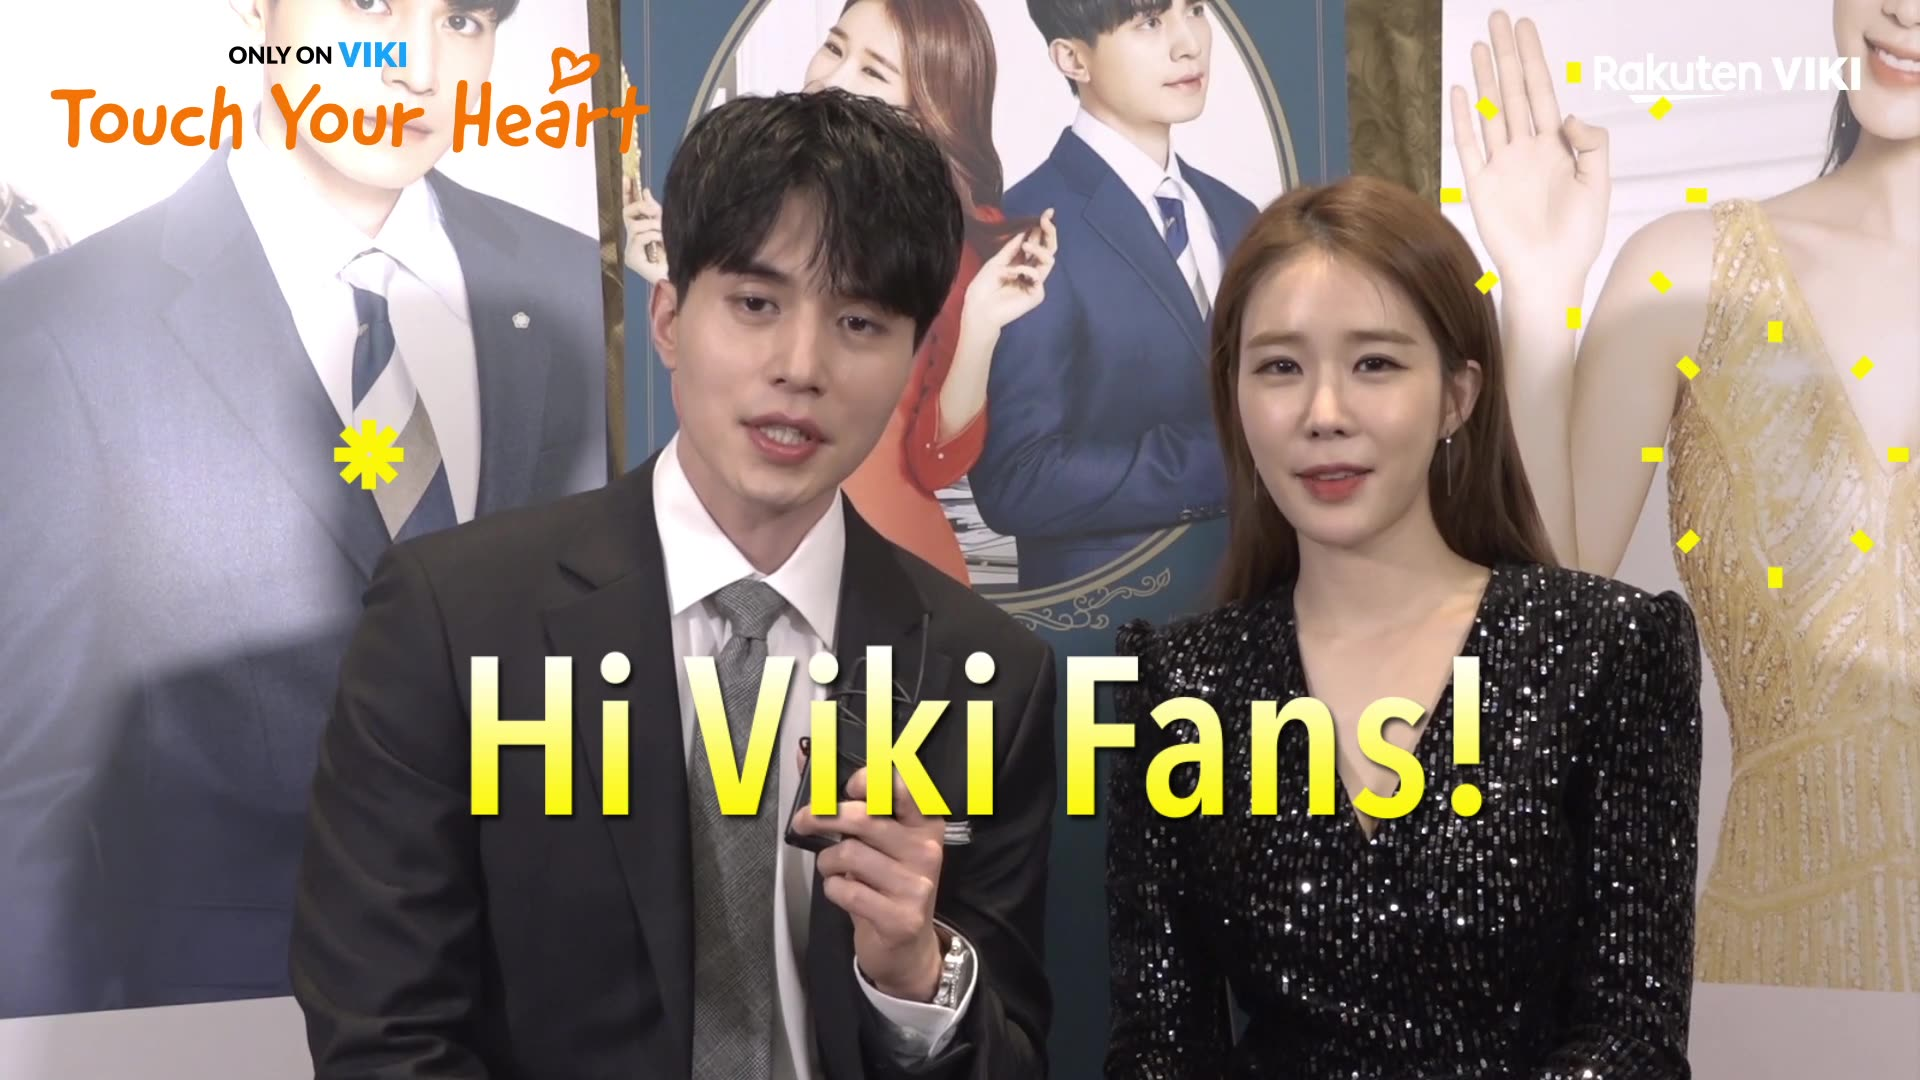 """Touch Your Heart"" Shoutout to Viki Fans: Touch Your Heart"